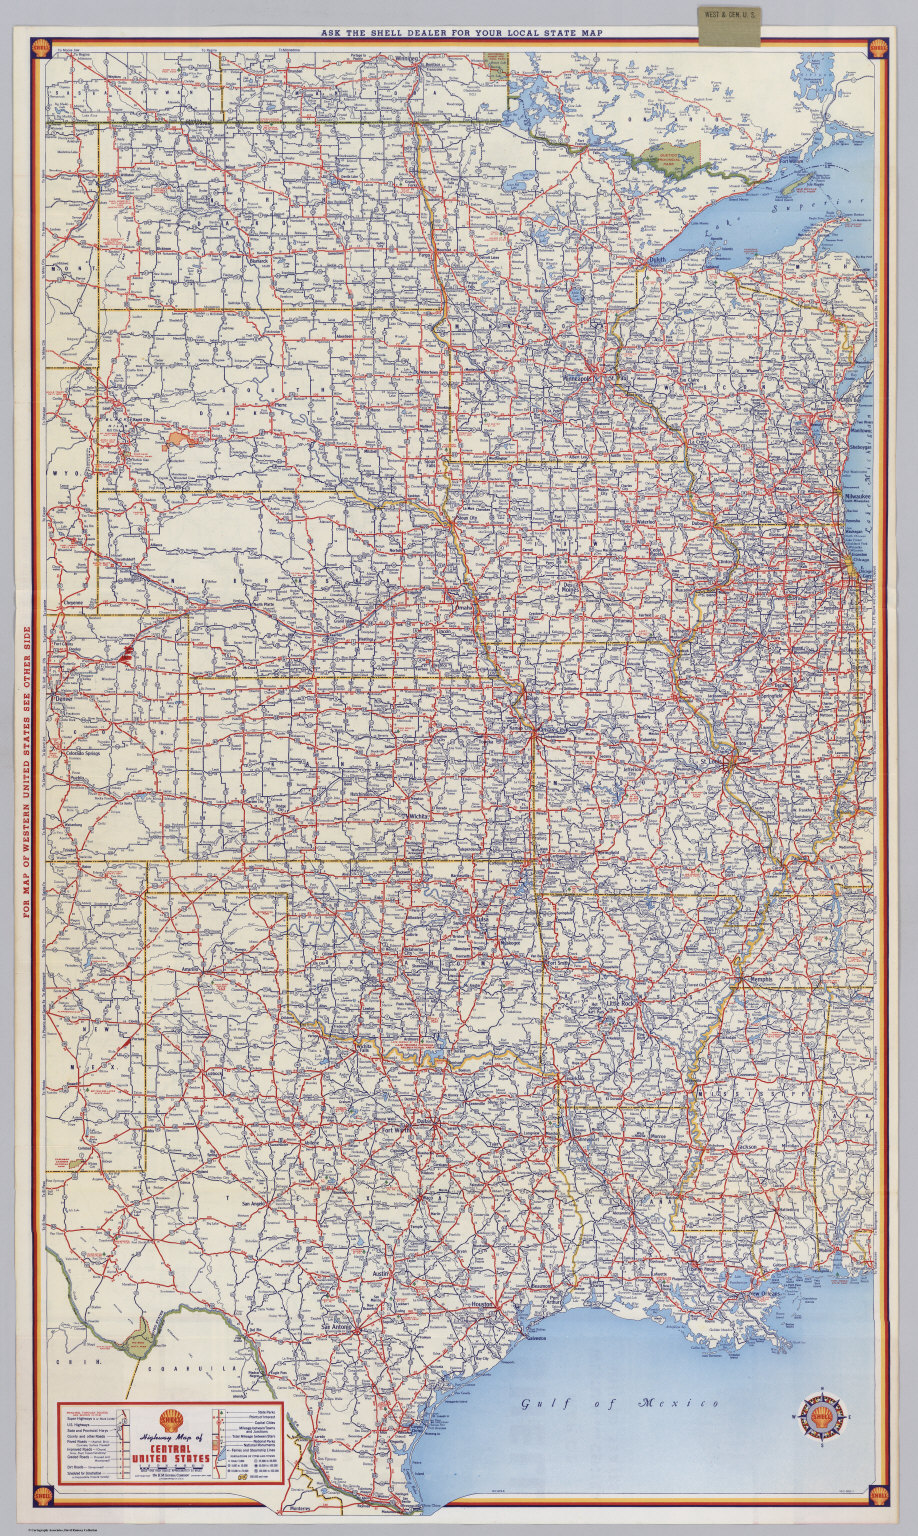 Shell Highway Map Of Central United States David Rumsey - Central us map